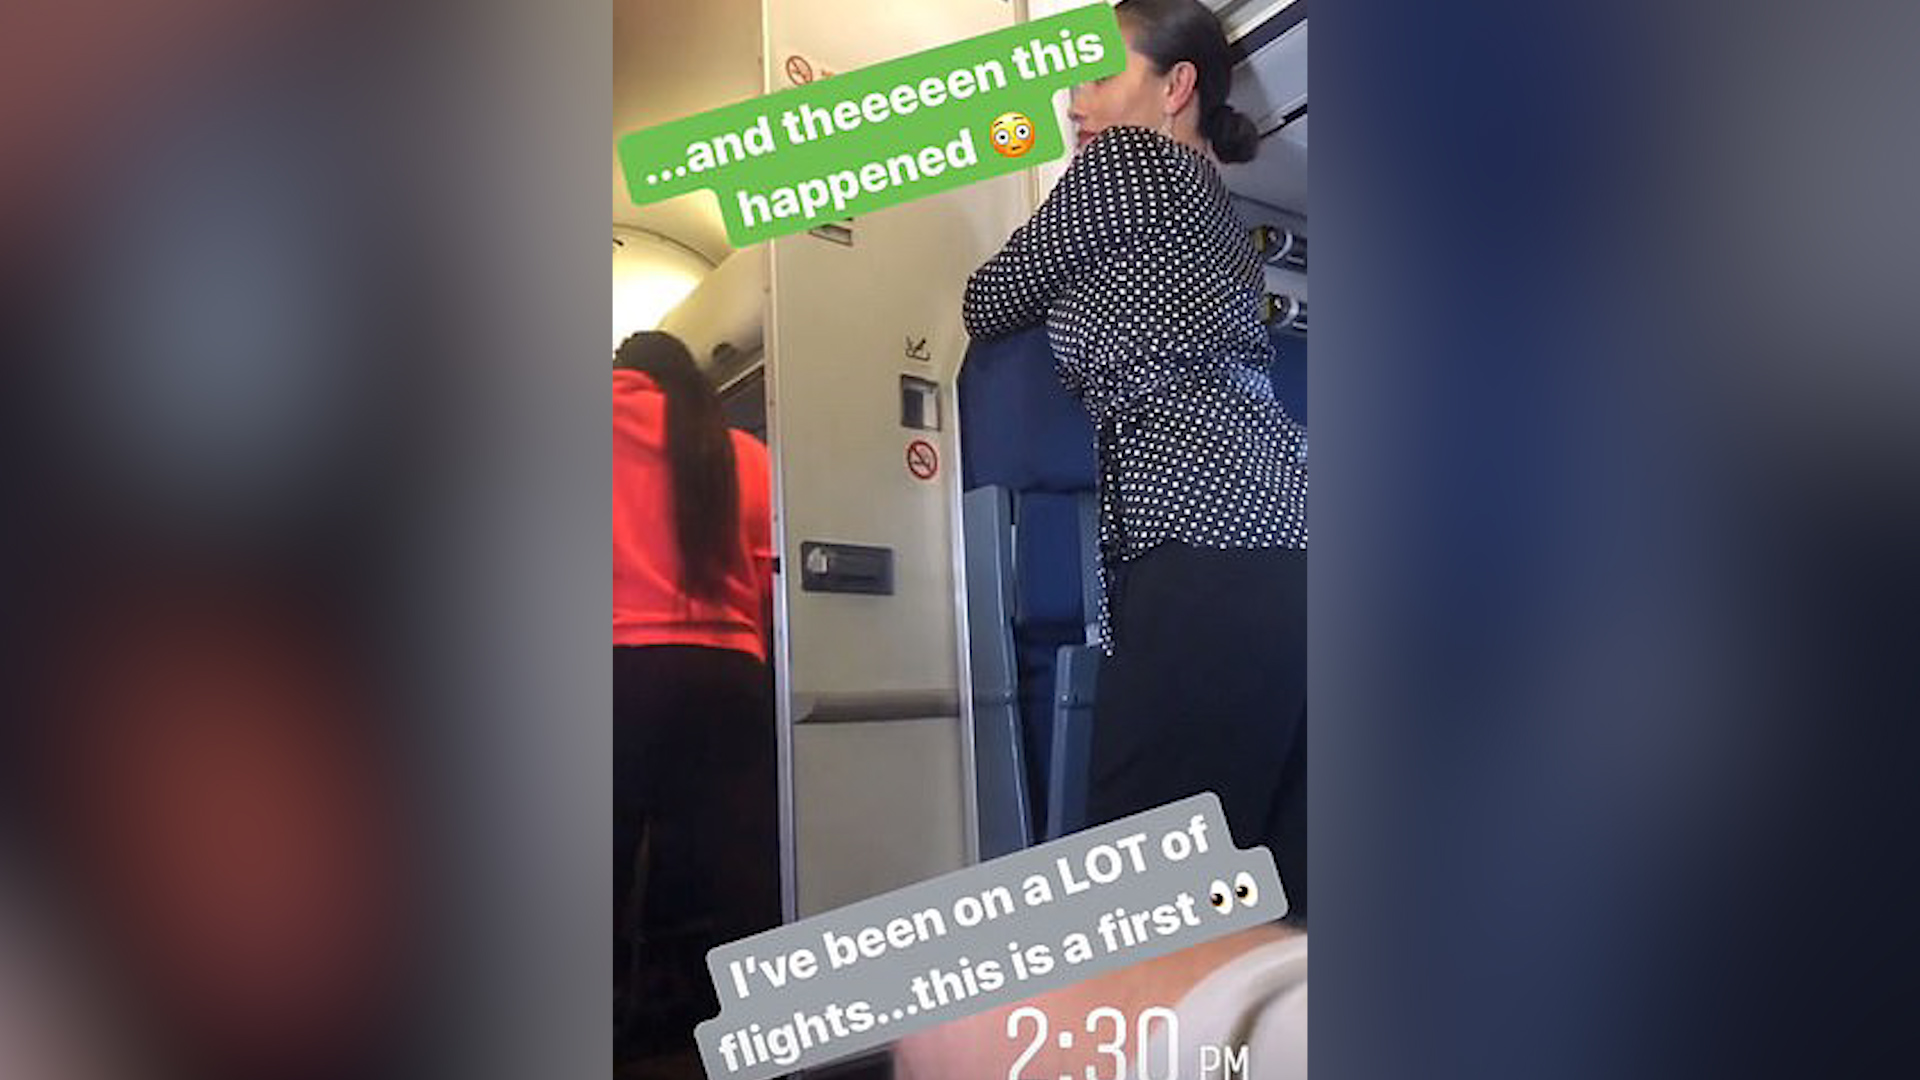 Couple join mile high club, awkwardly exit toilet together